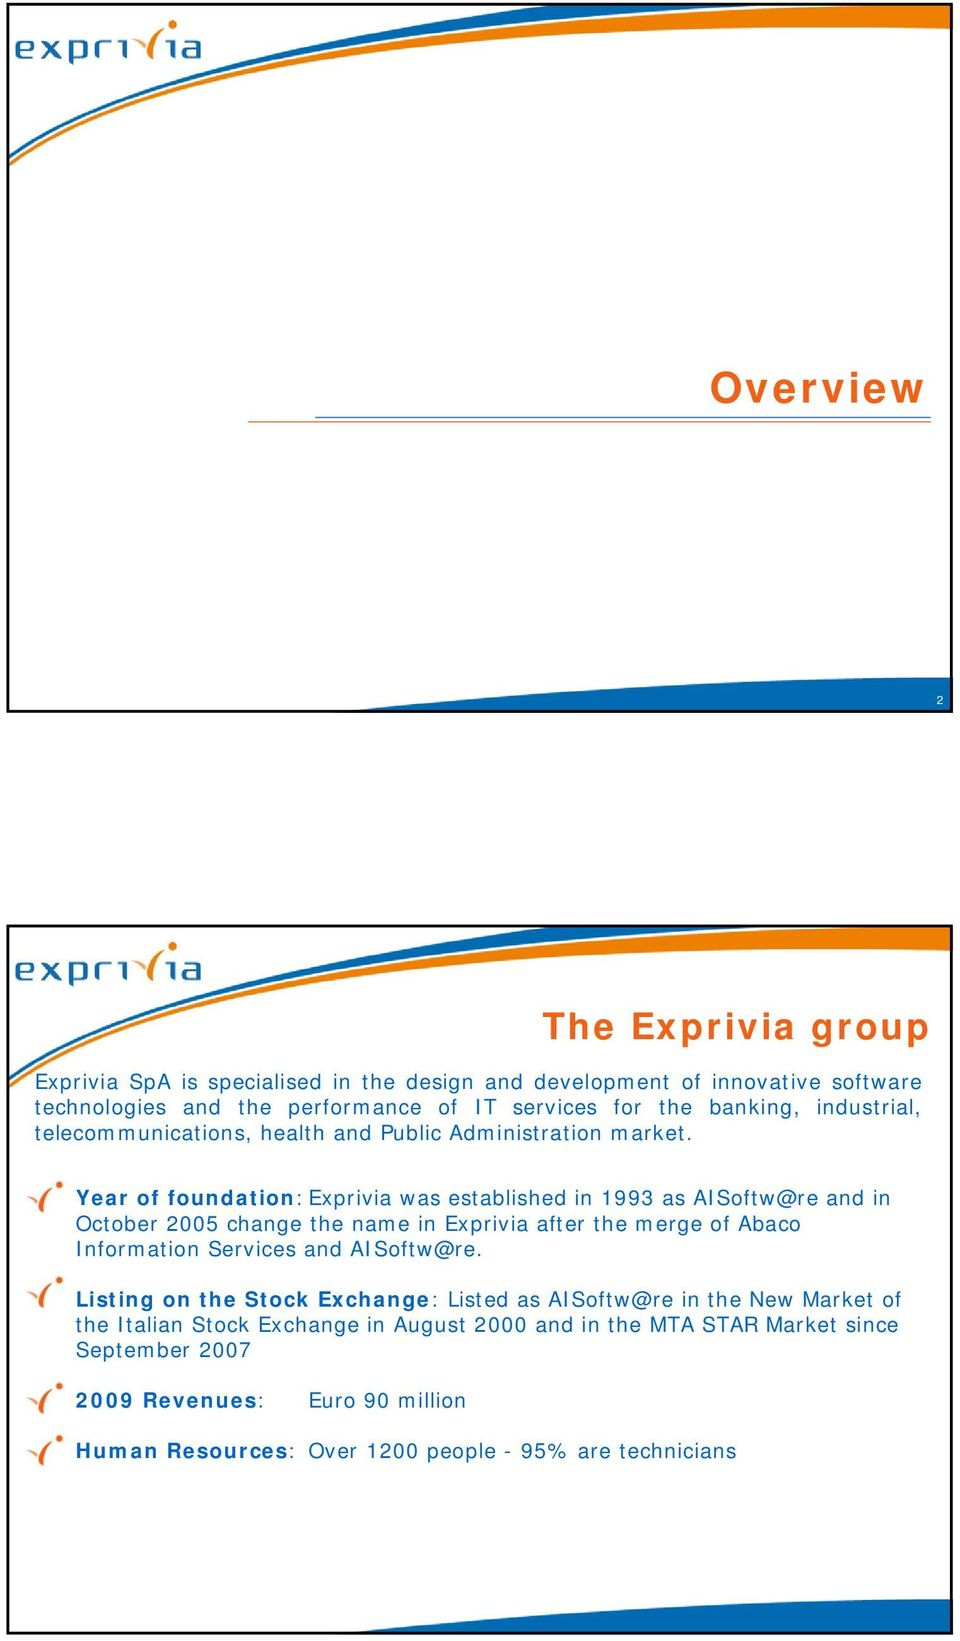 Year of foundation: Exprivia was established in 1993 as AISoftw@re and in October 2005 change the name in Exprivia after the merge of Abaco Information Services and